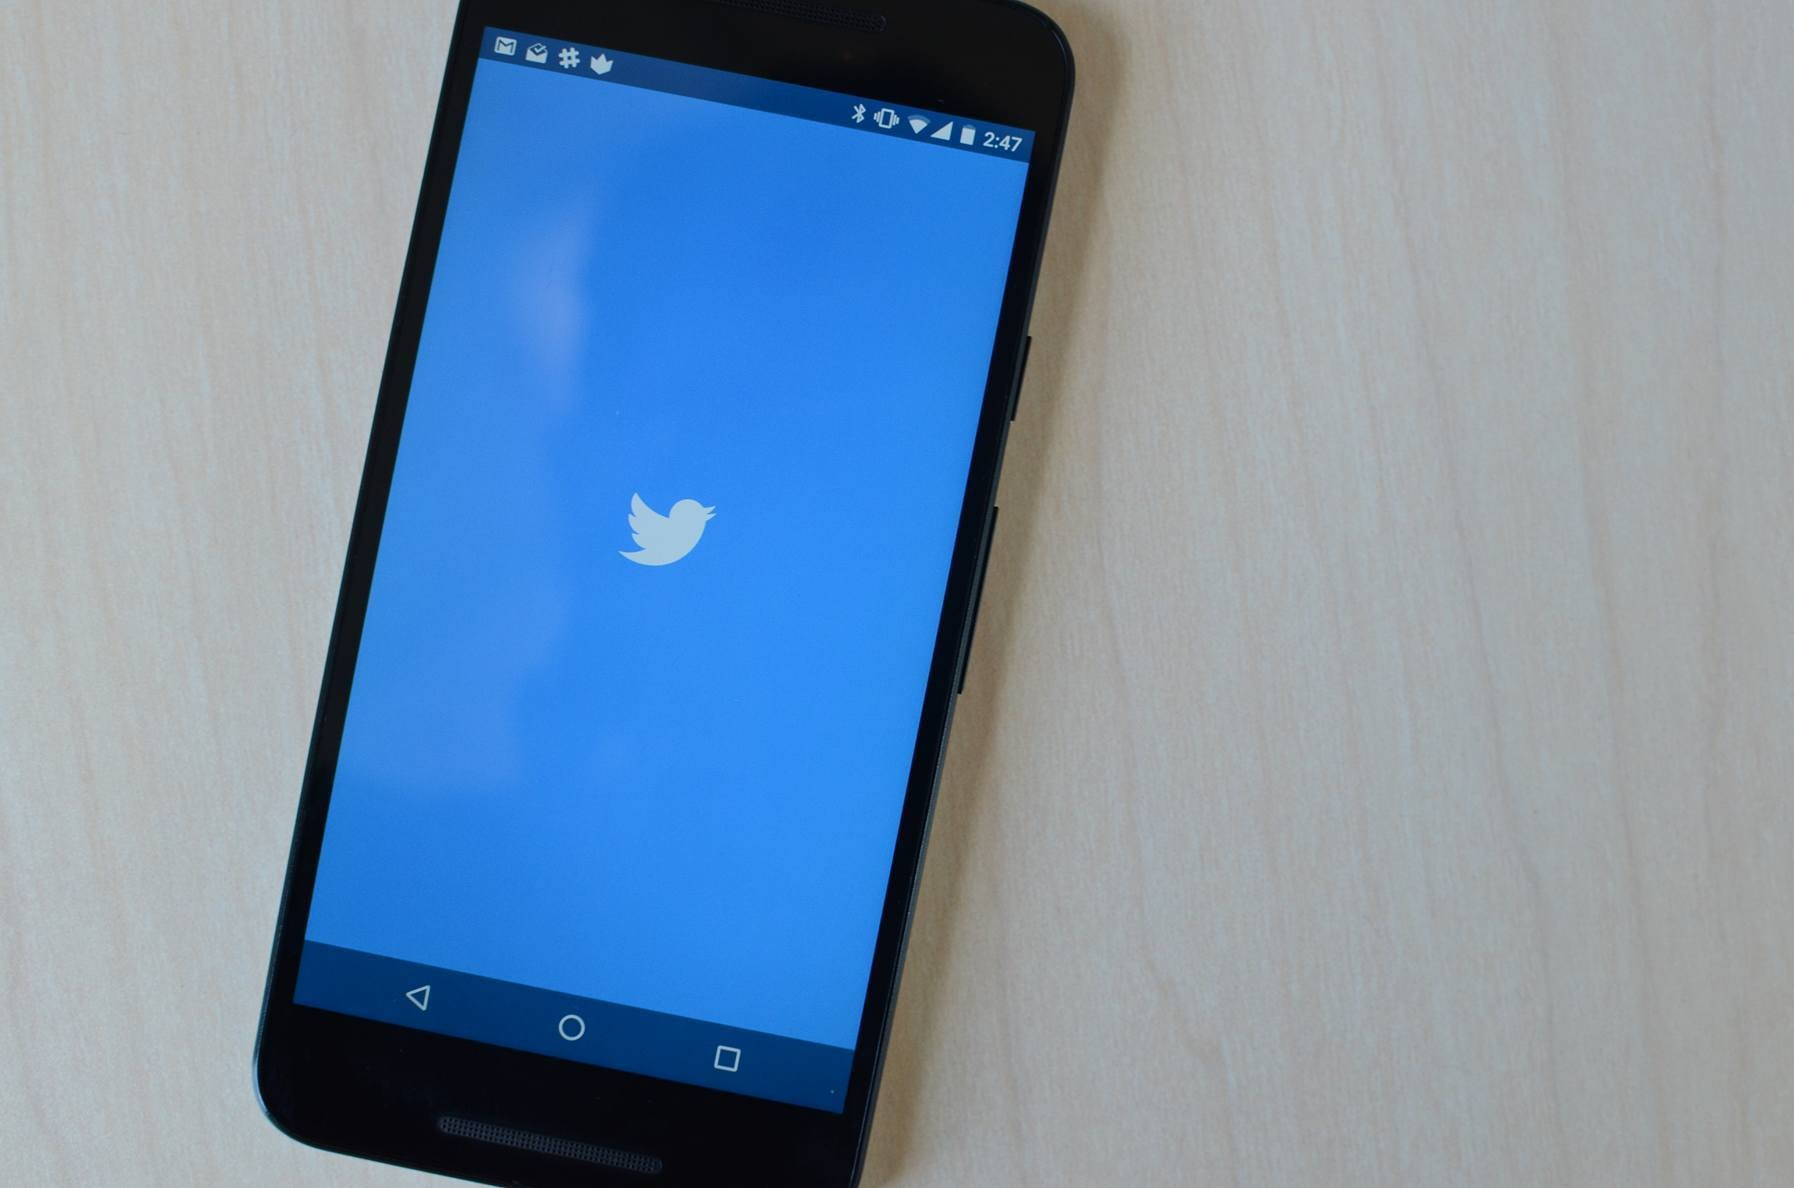 Report: Disney seriously considering Twitter takeover bid